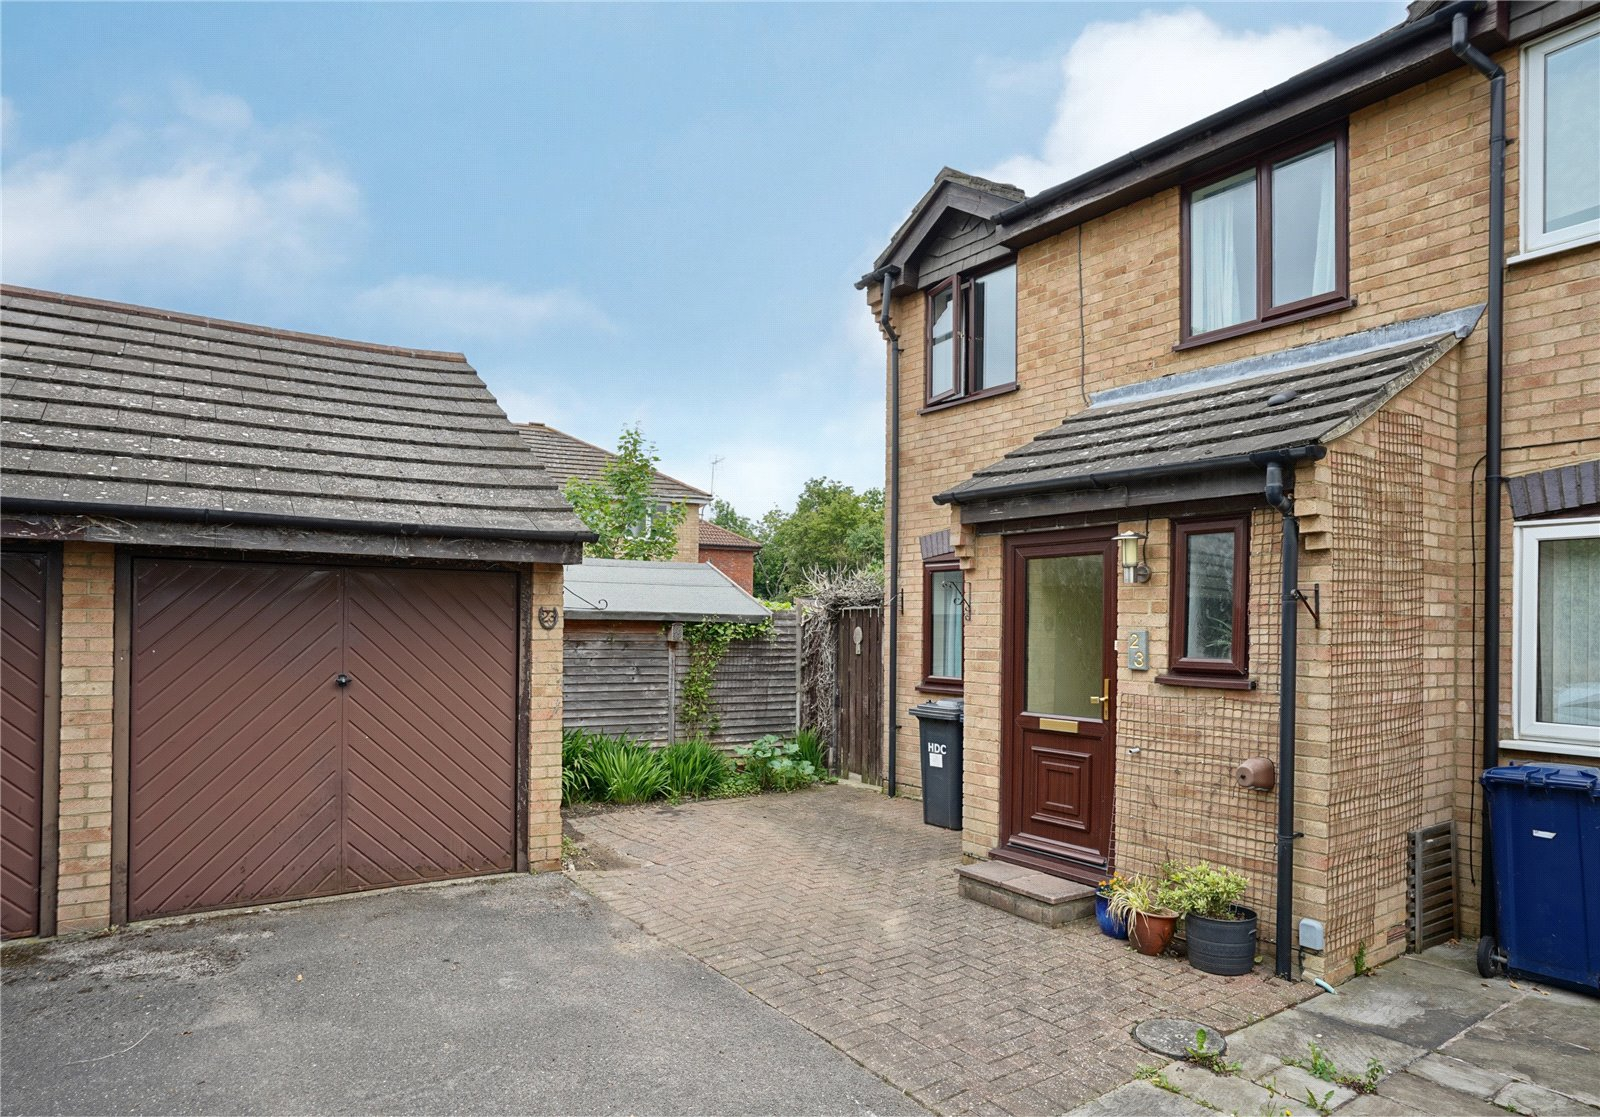 3 bed house for sale in Carisbrooke Way, Eynesbury  - Property Image 1